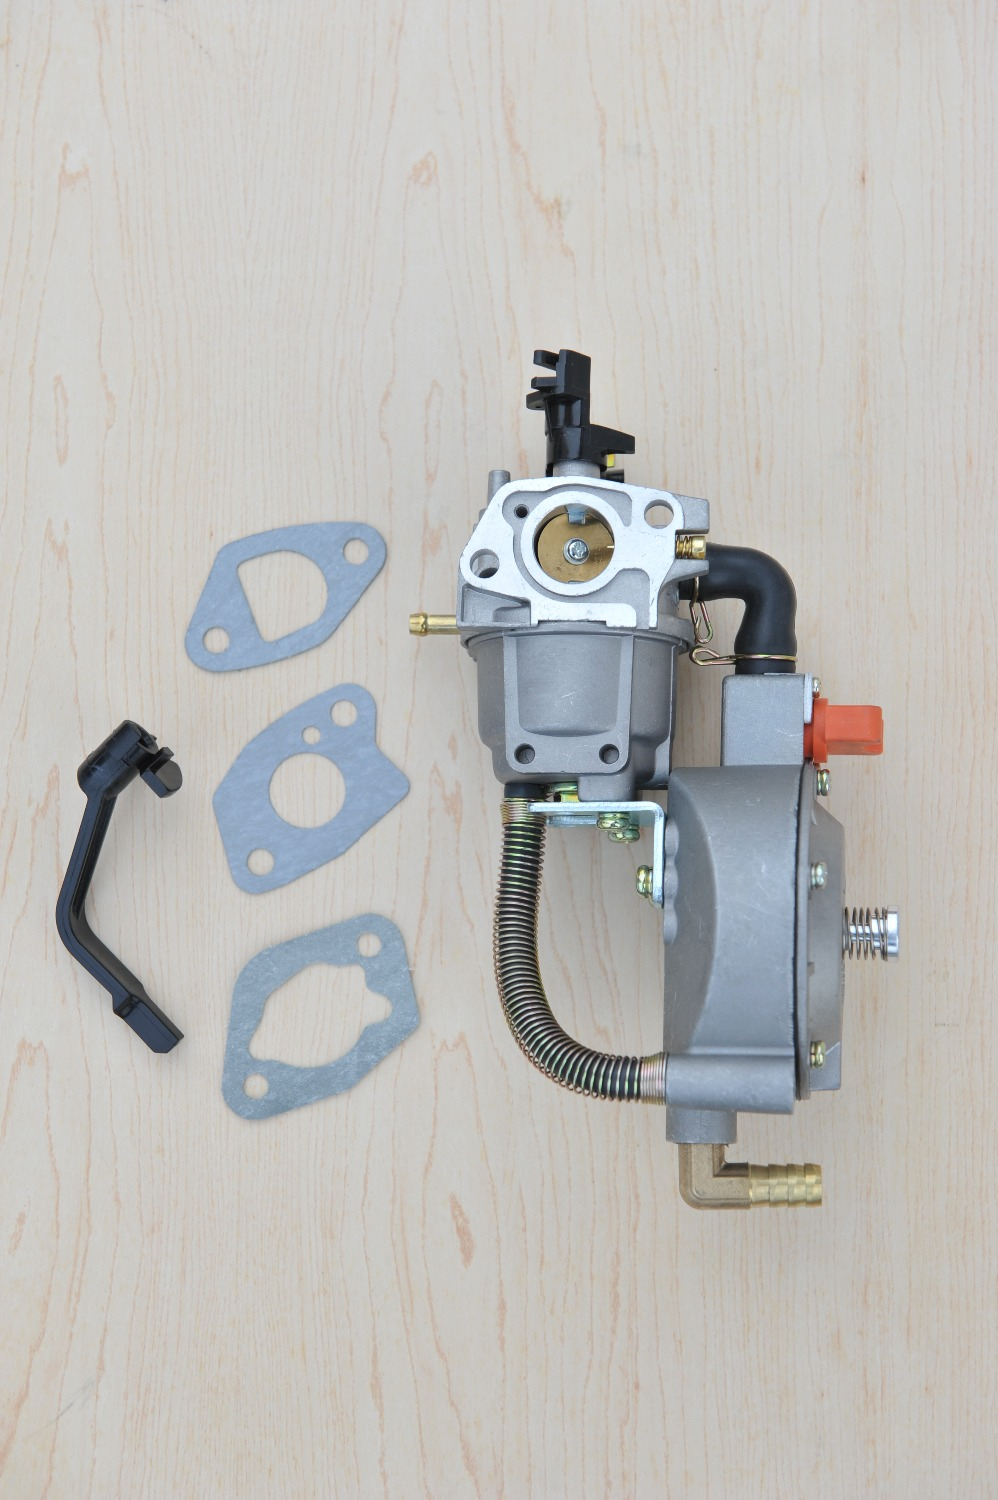 dual fuel carburetor for gasoline generator LPG NG propane gasoline hybrid 2.8KW 170F GX200 + silk scarf as gift